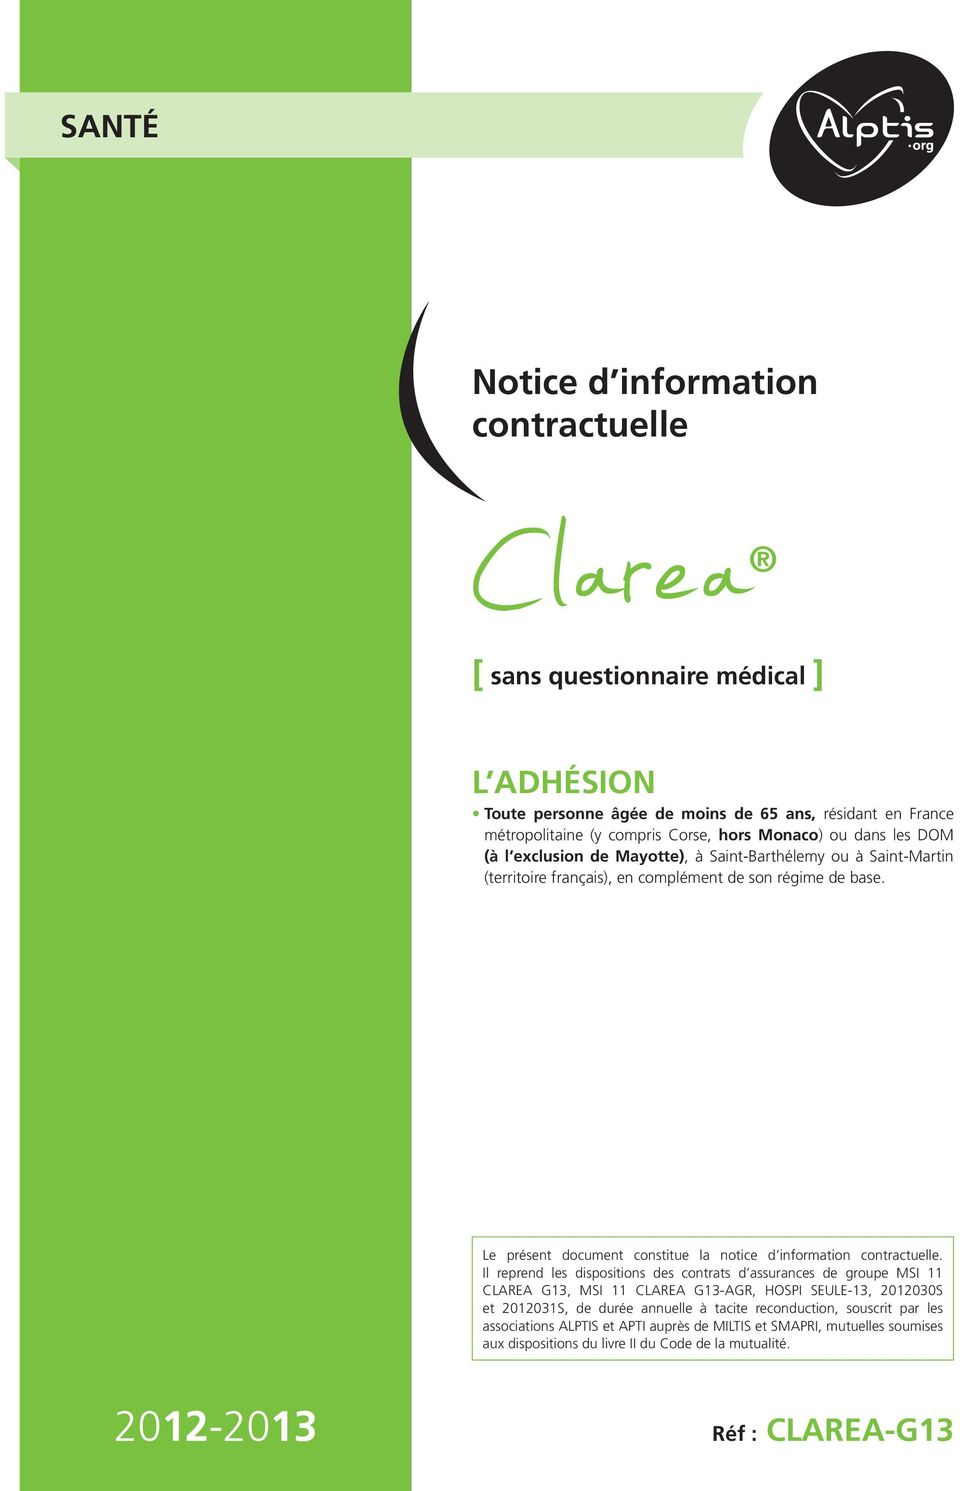 Le présent document constitue la notice d information contractuelle.